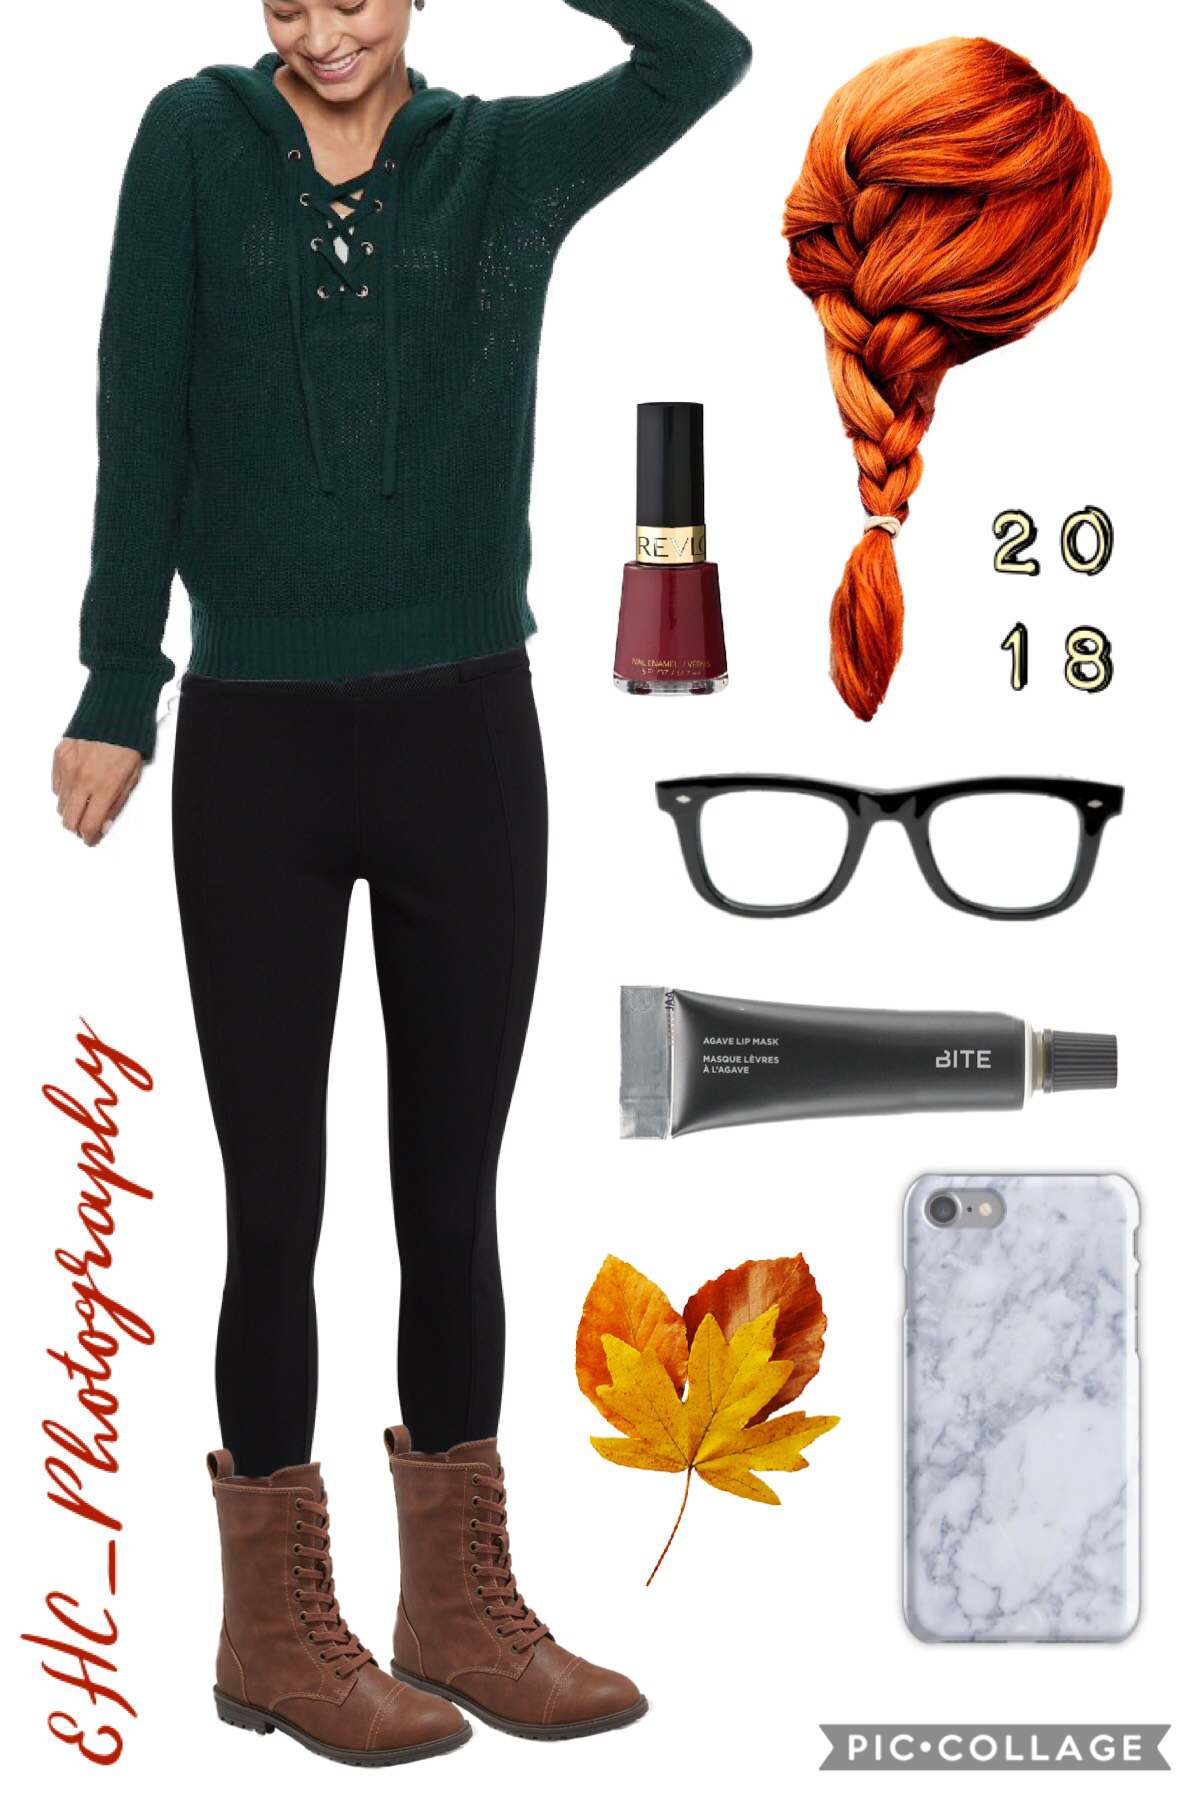 Happy Thanksgiving! 🦃 🍽 🍂 I wore some of this, but I didn't have time to paint my nails. 😅 It was sooo cold out. 🥶 I missed the parade, but I might rewatch parts of it on YouTube sometime. 😆 This is late cuz I fell asleep earlier... 😑